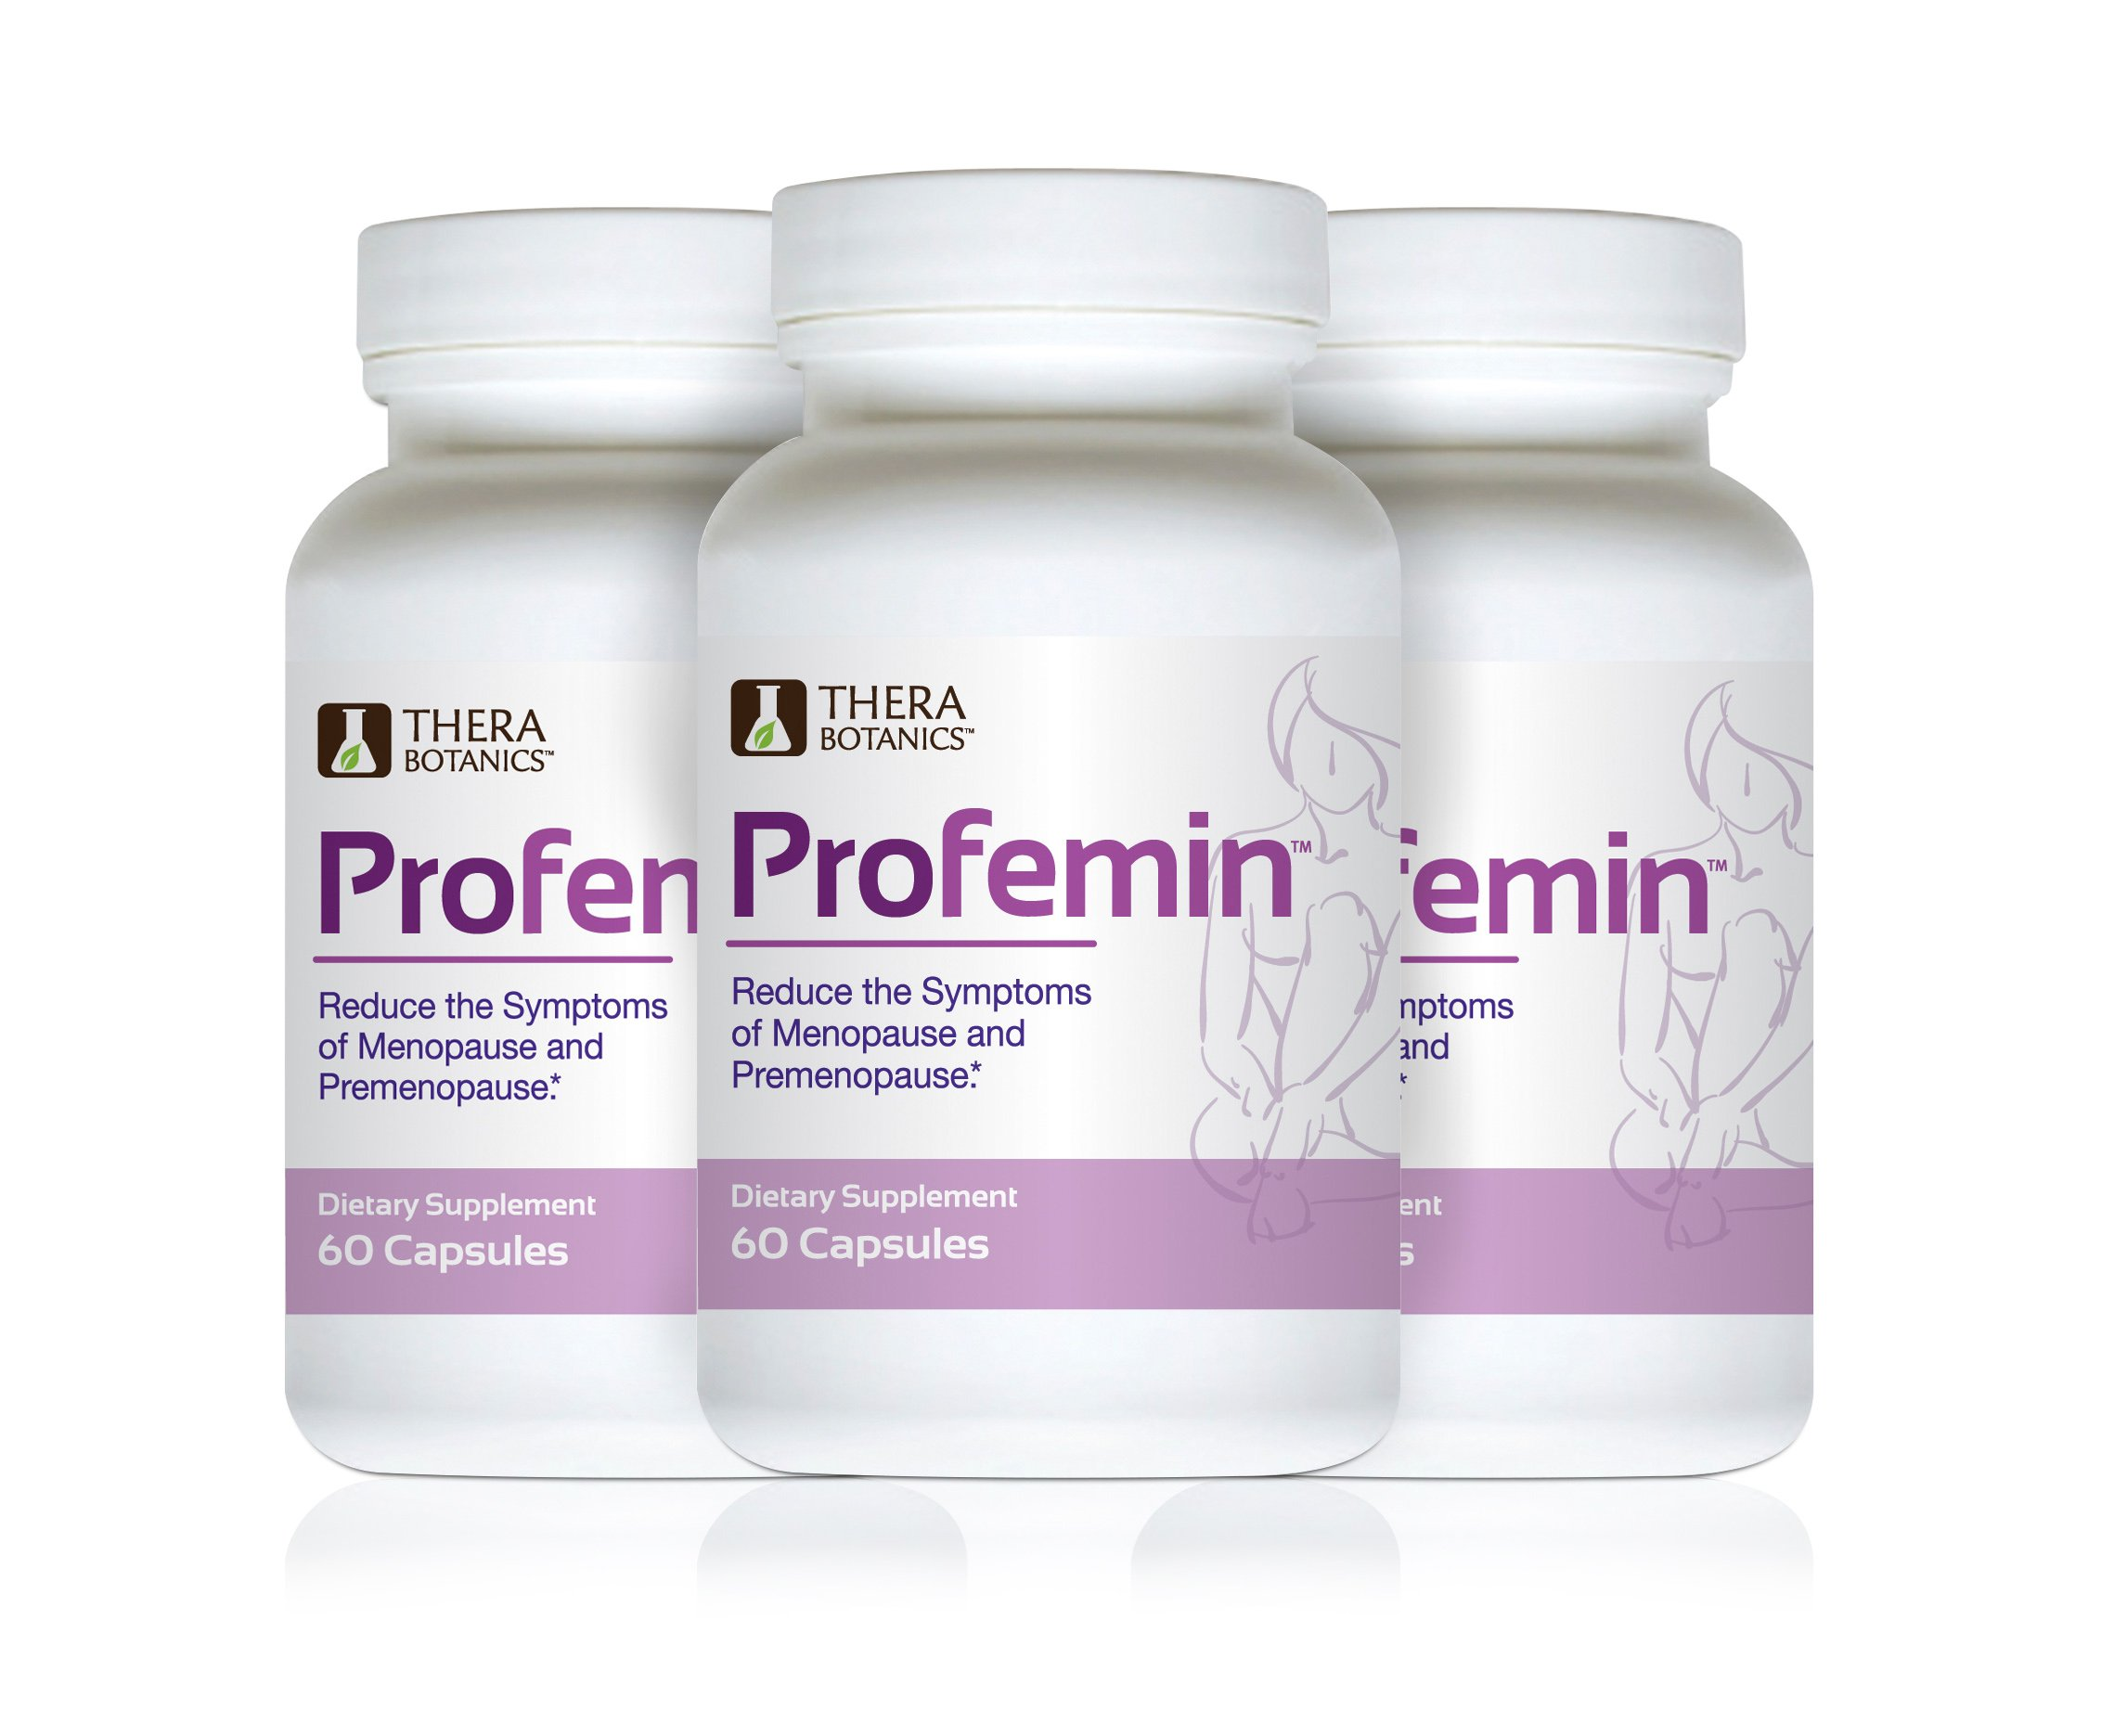 Profemin Natural Menopause & Premenopause Supplement - 3 Month Supply